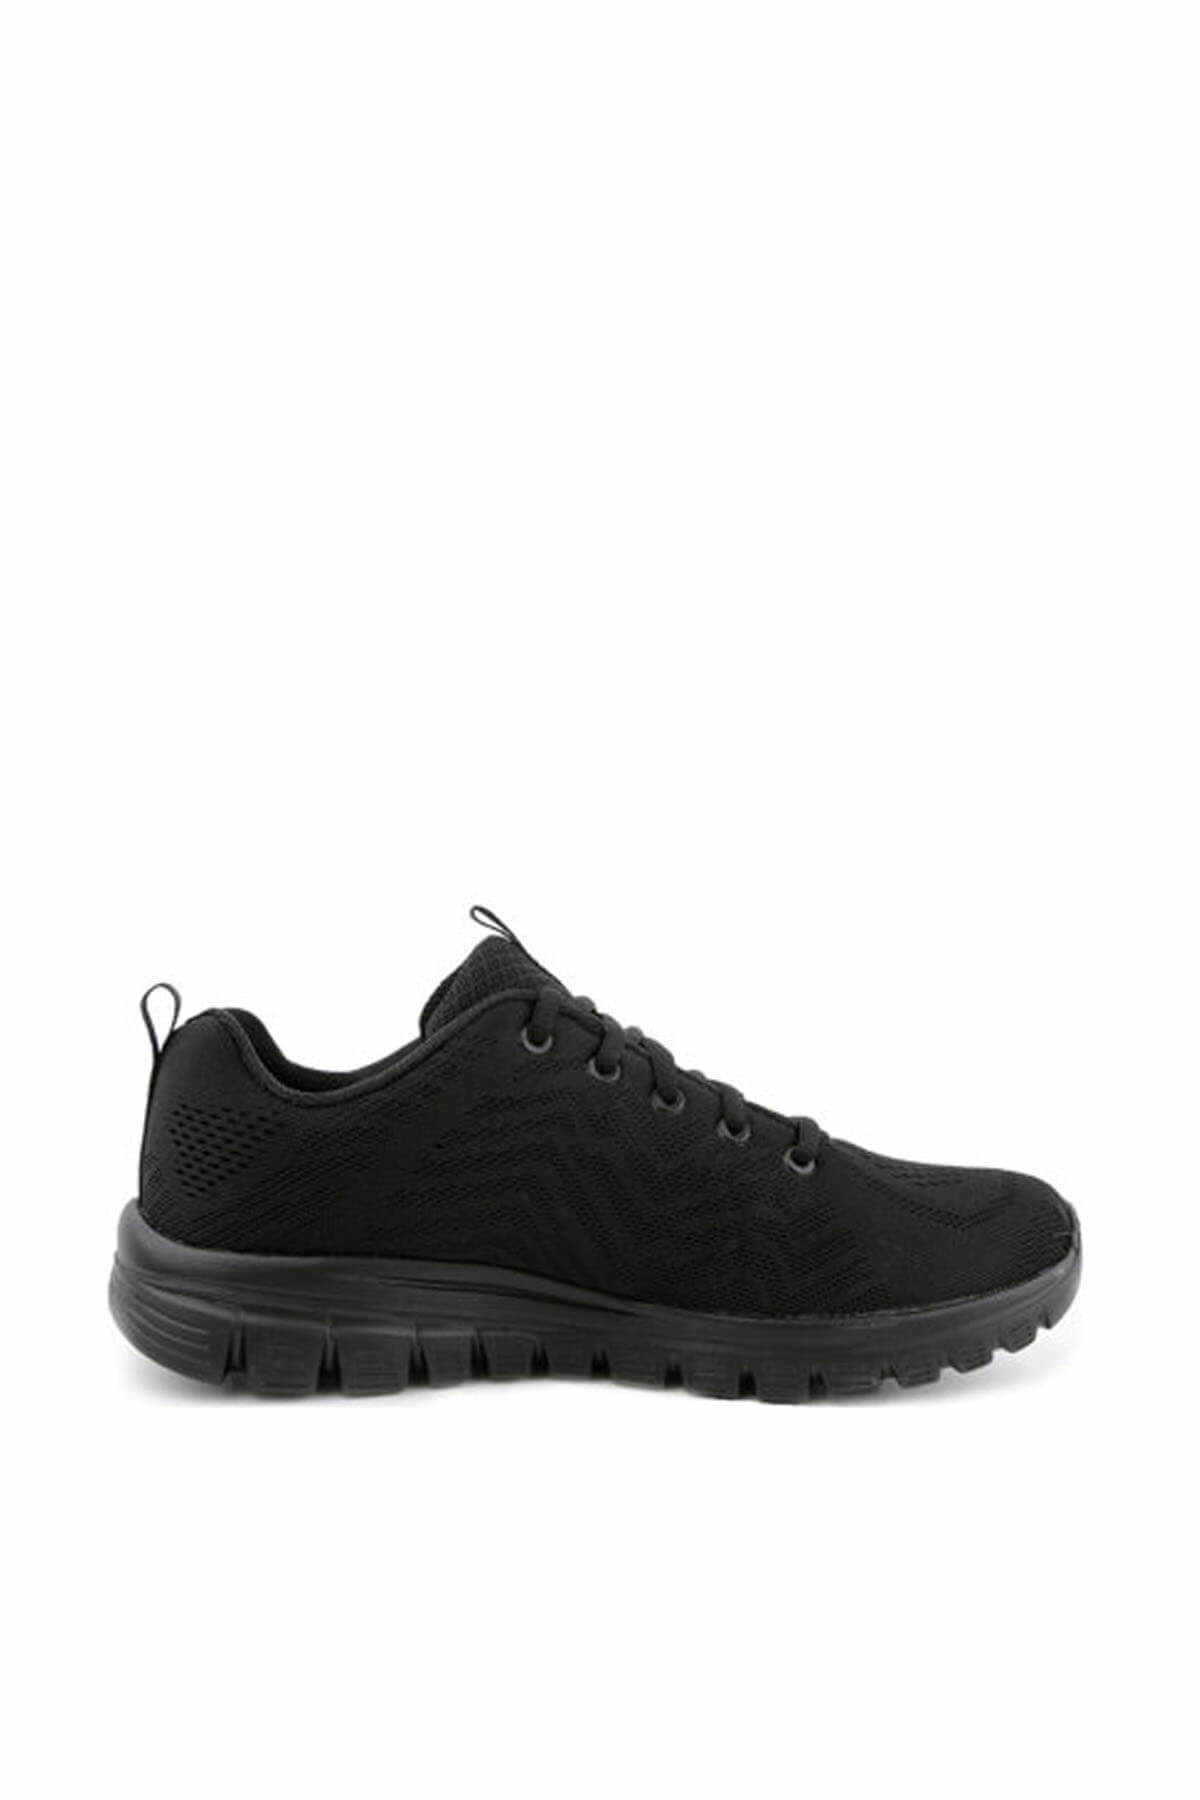 Skechers Kadın Sneaker – Graceful-get Connected 12615 Bbk – 399.0 TL